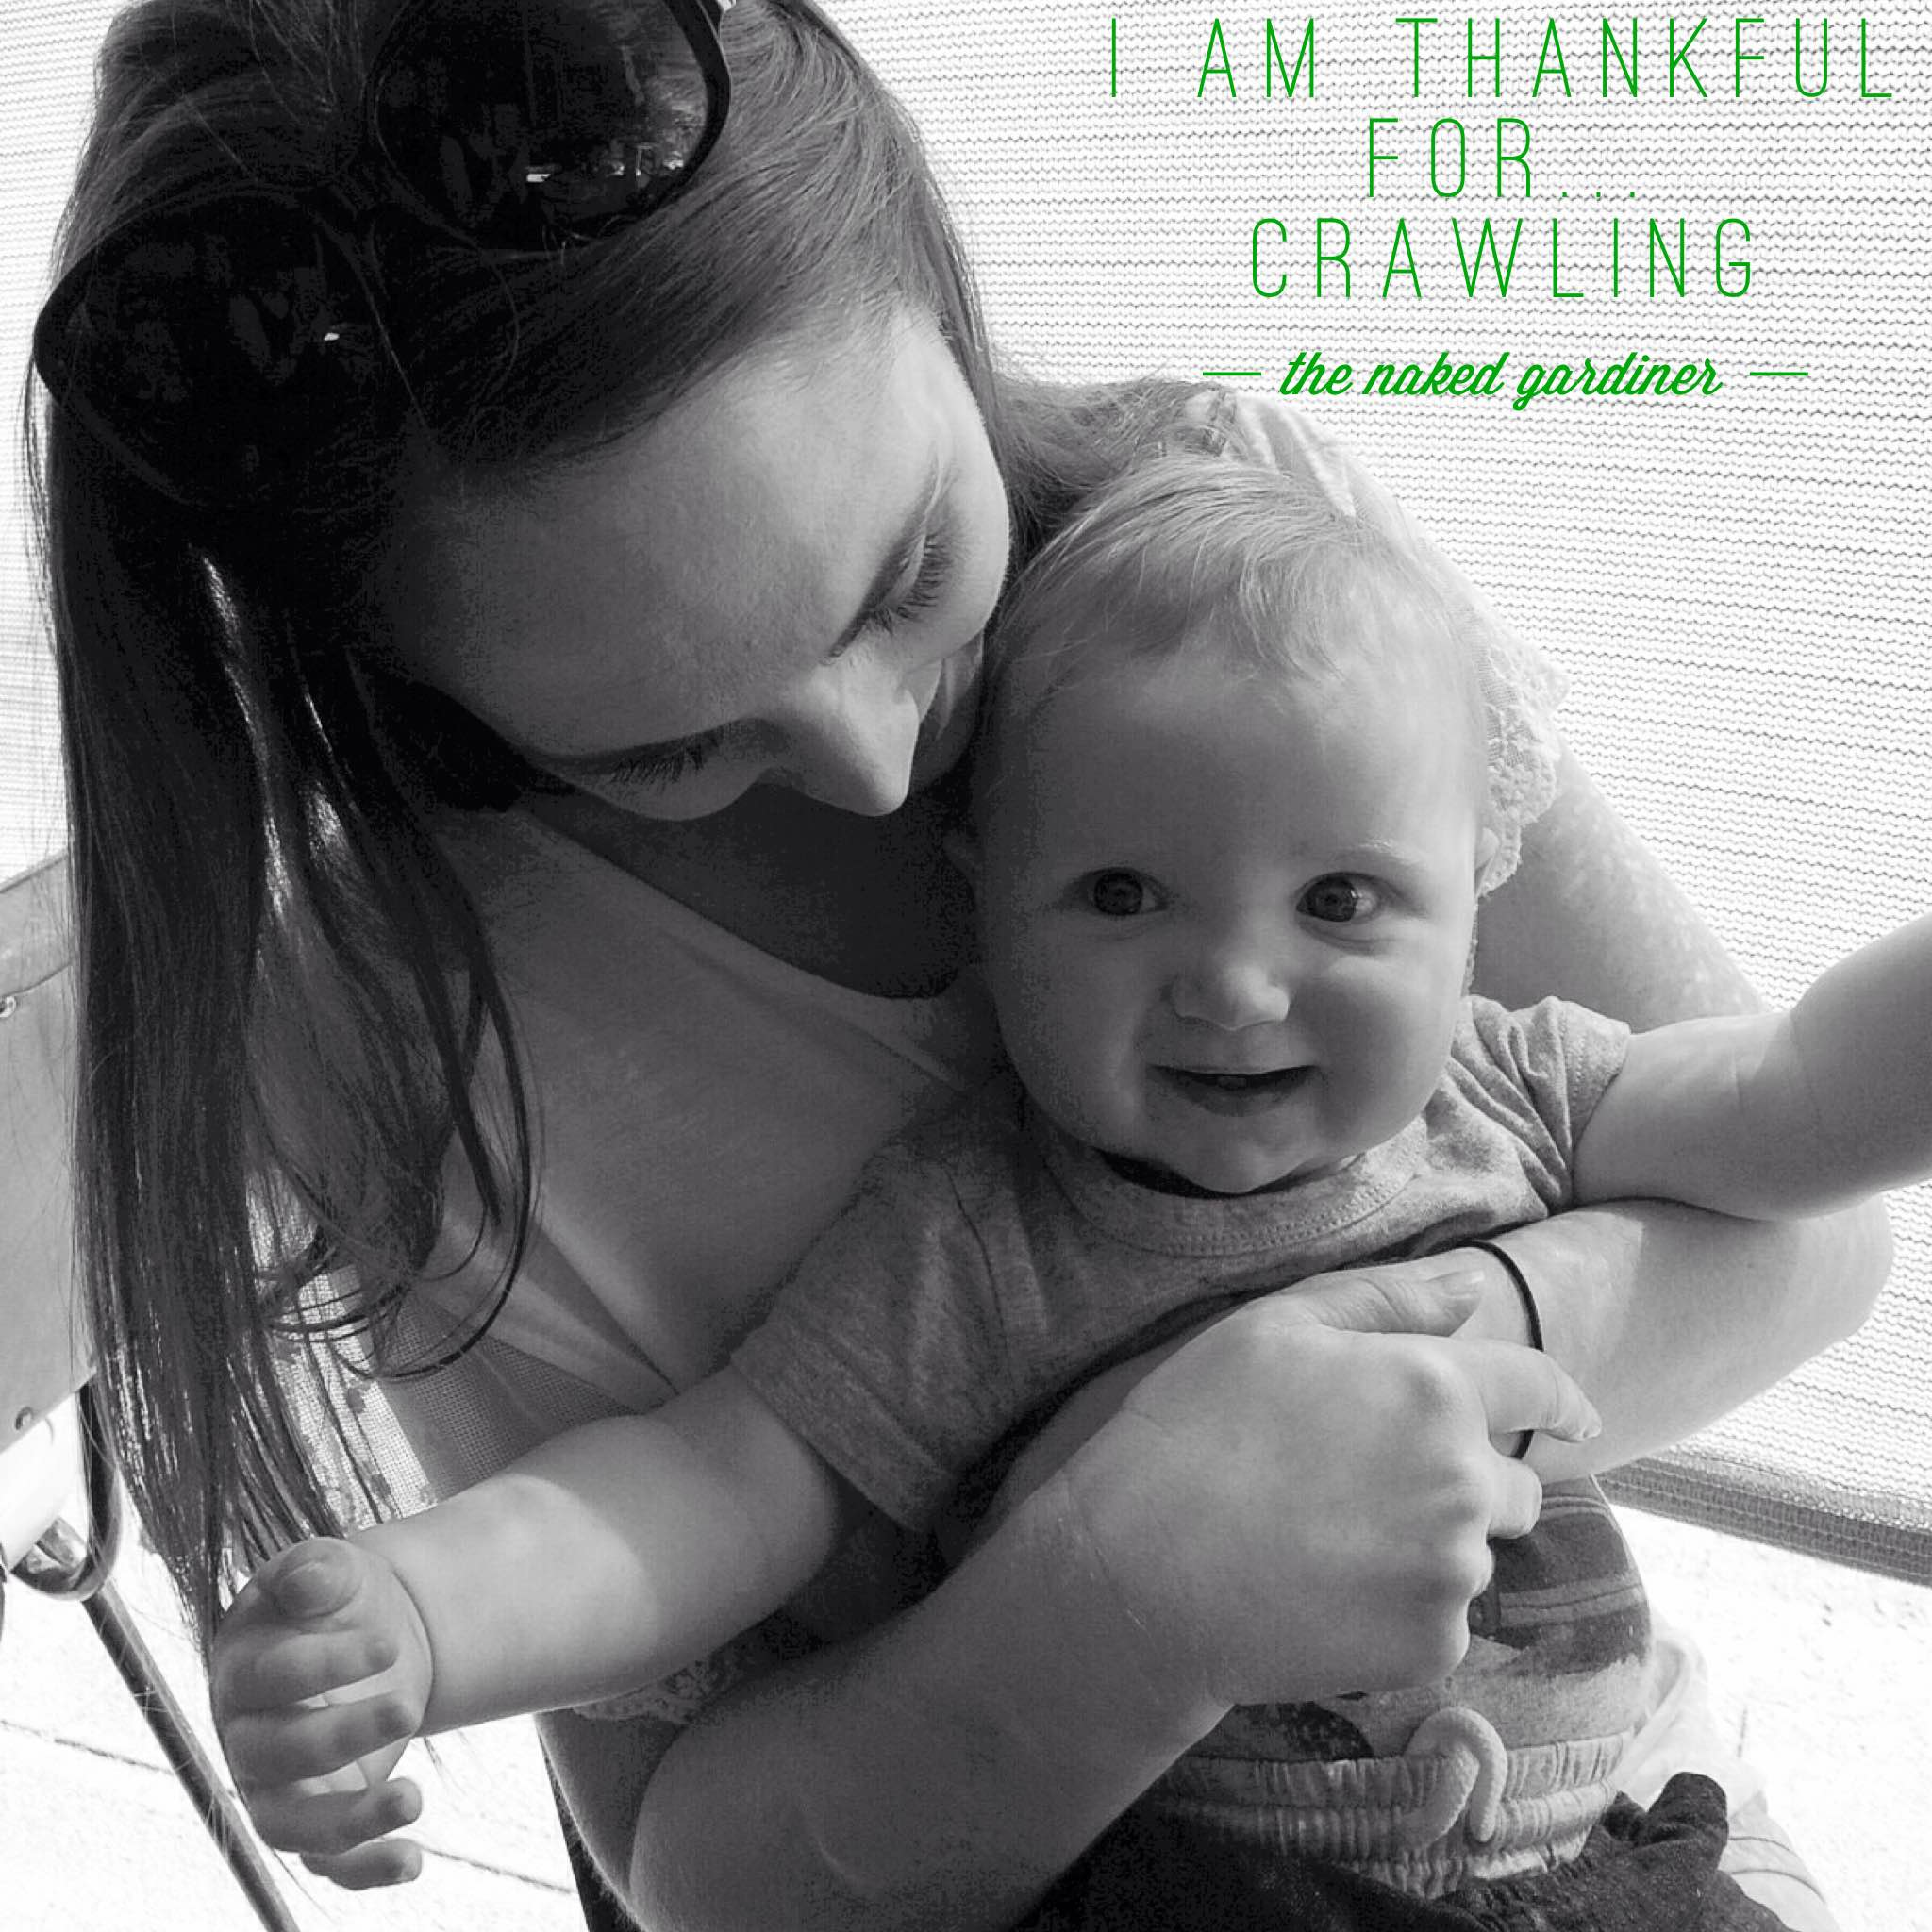 thankful-thursdays-crawling-thenakedgardiner